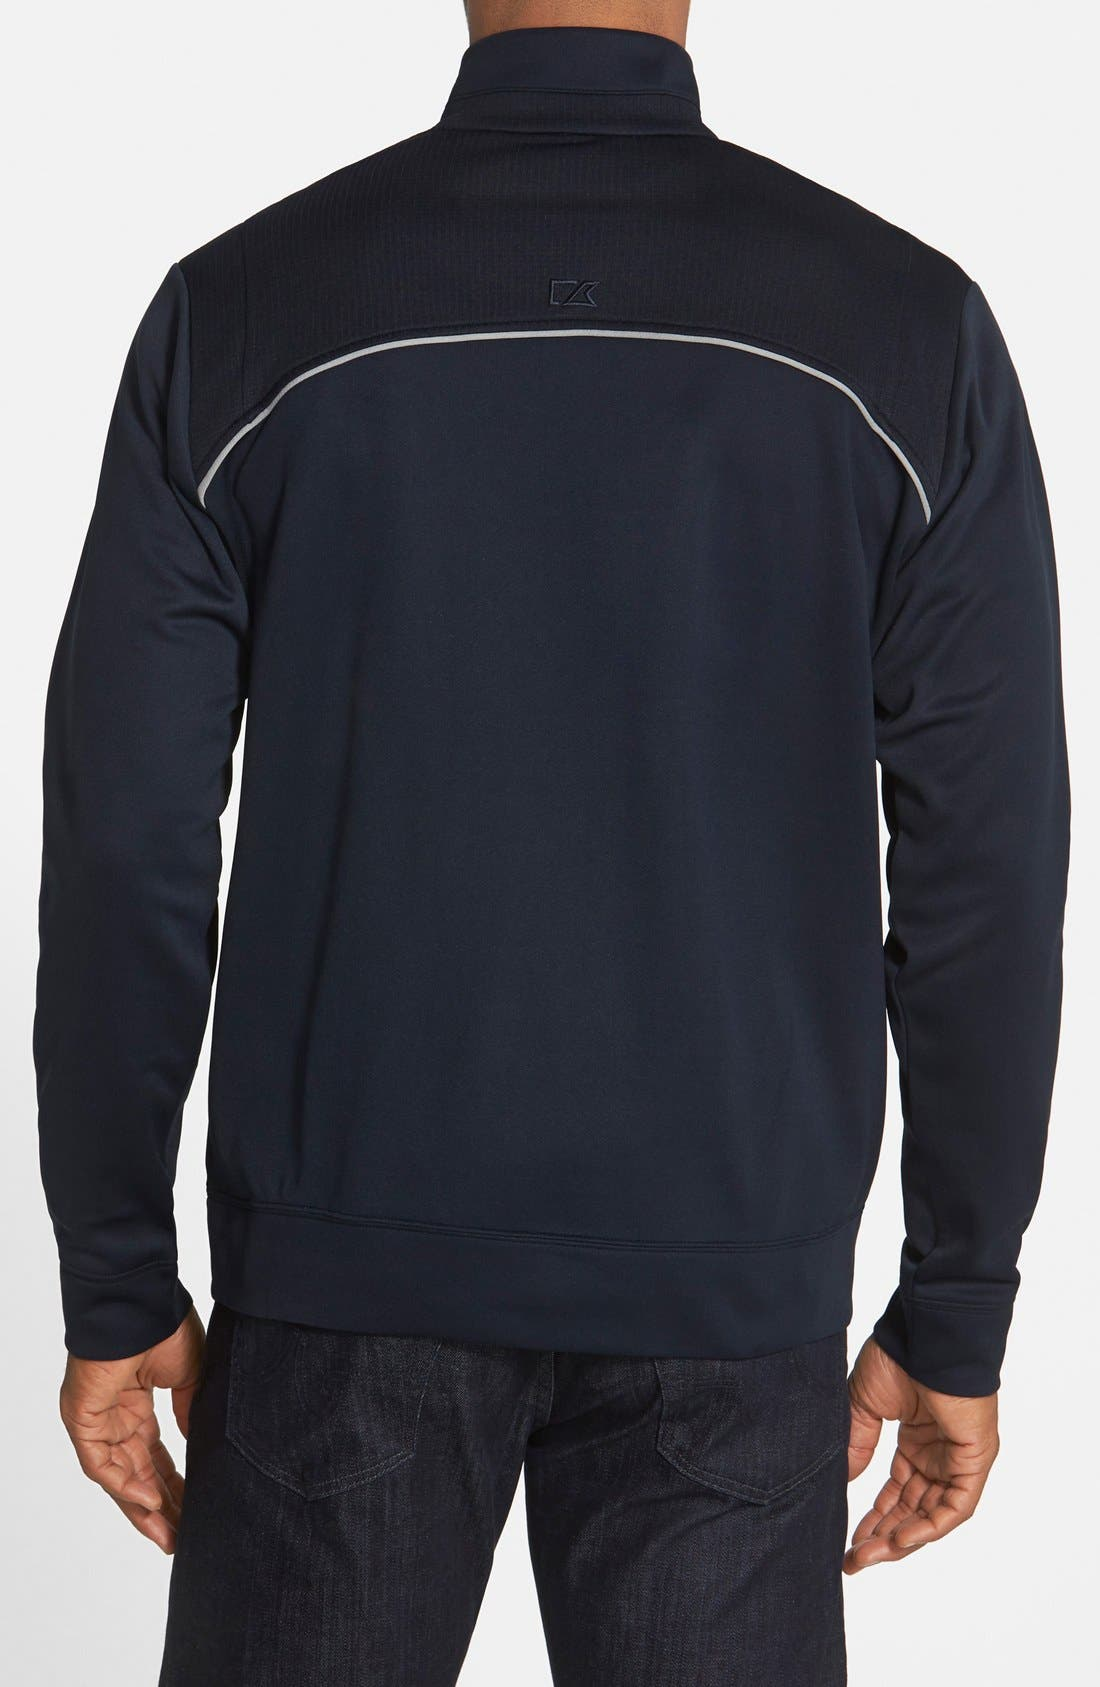 Ridge WeatherTec Wind & Water Resistant Pullover,                             Alternate thumbnail 3, color,                             Navy Blue